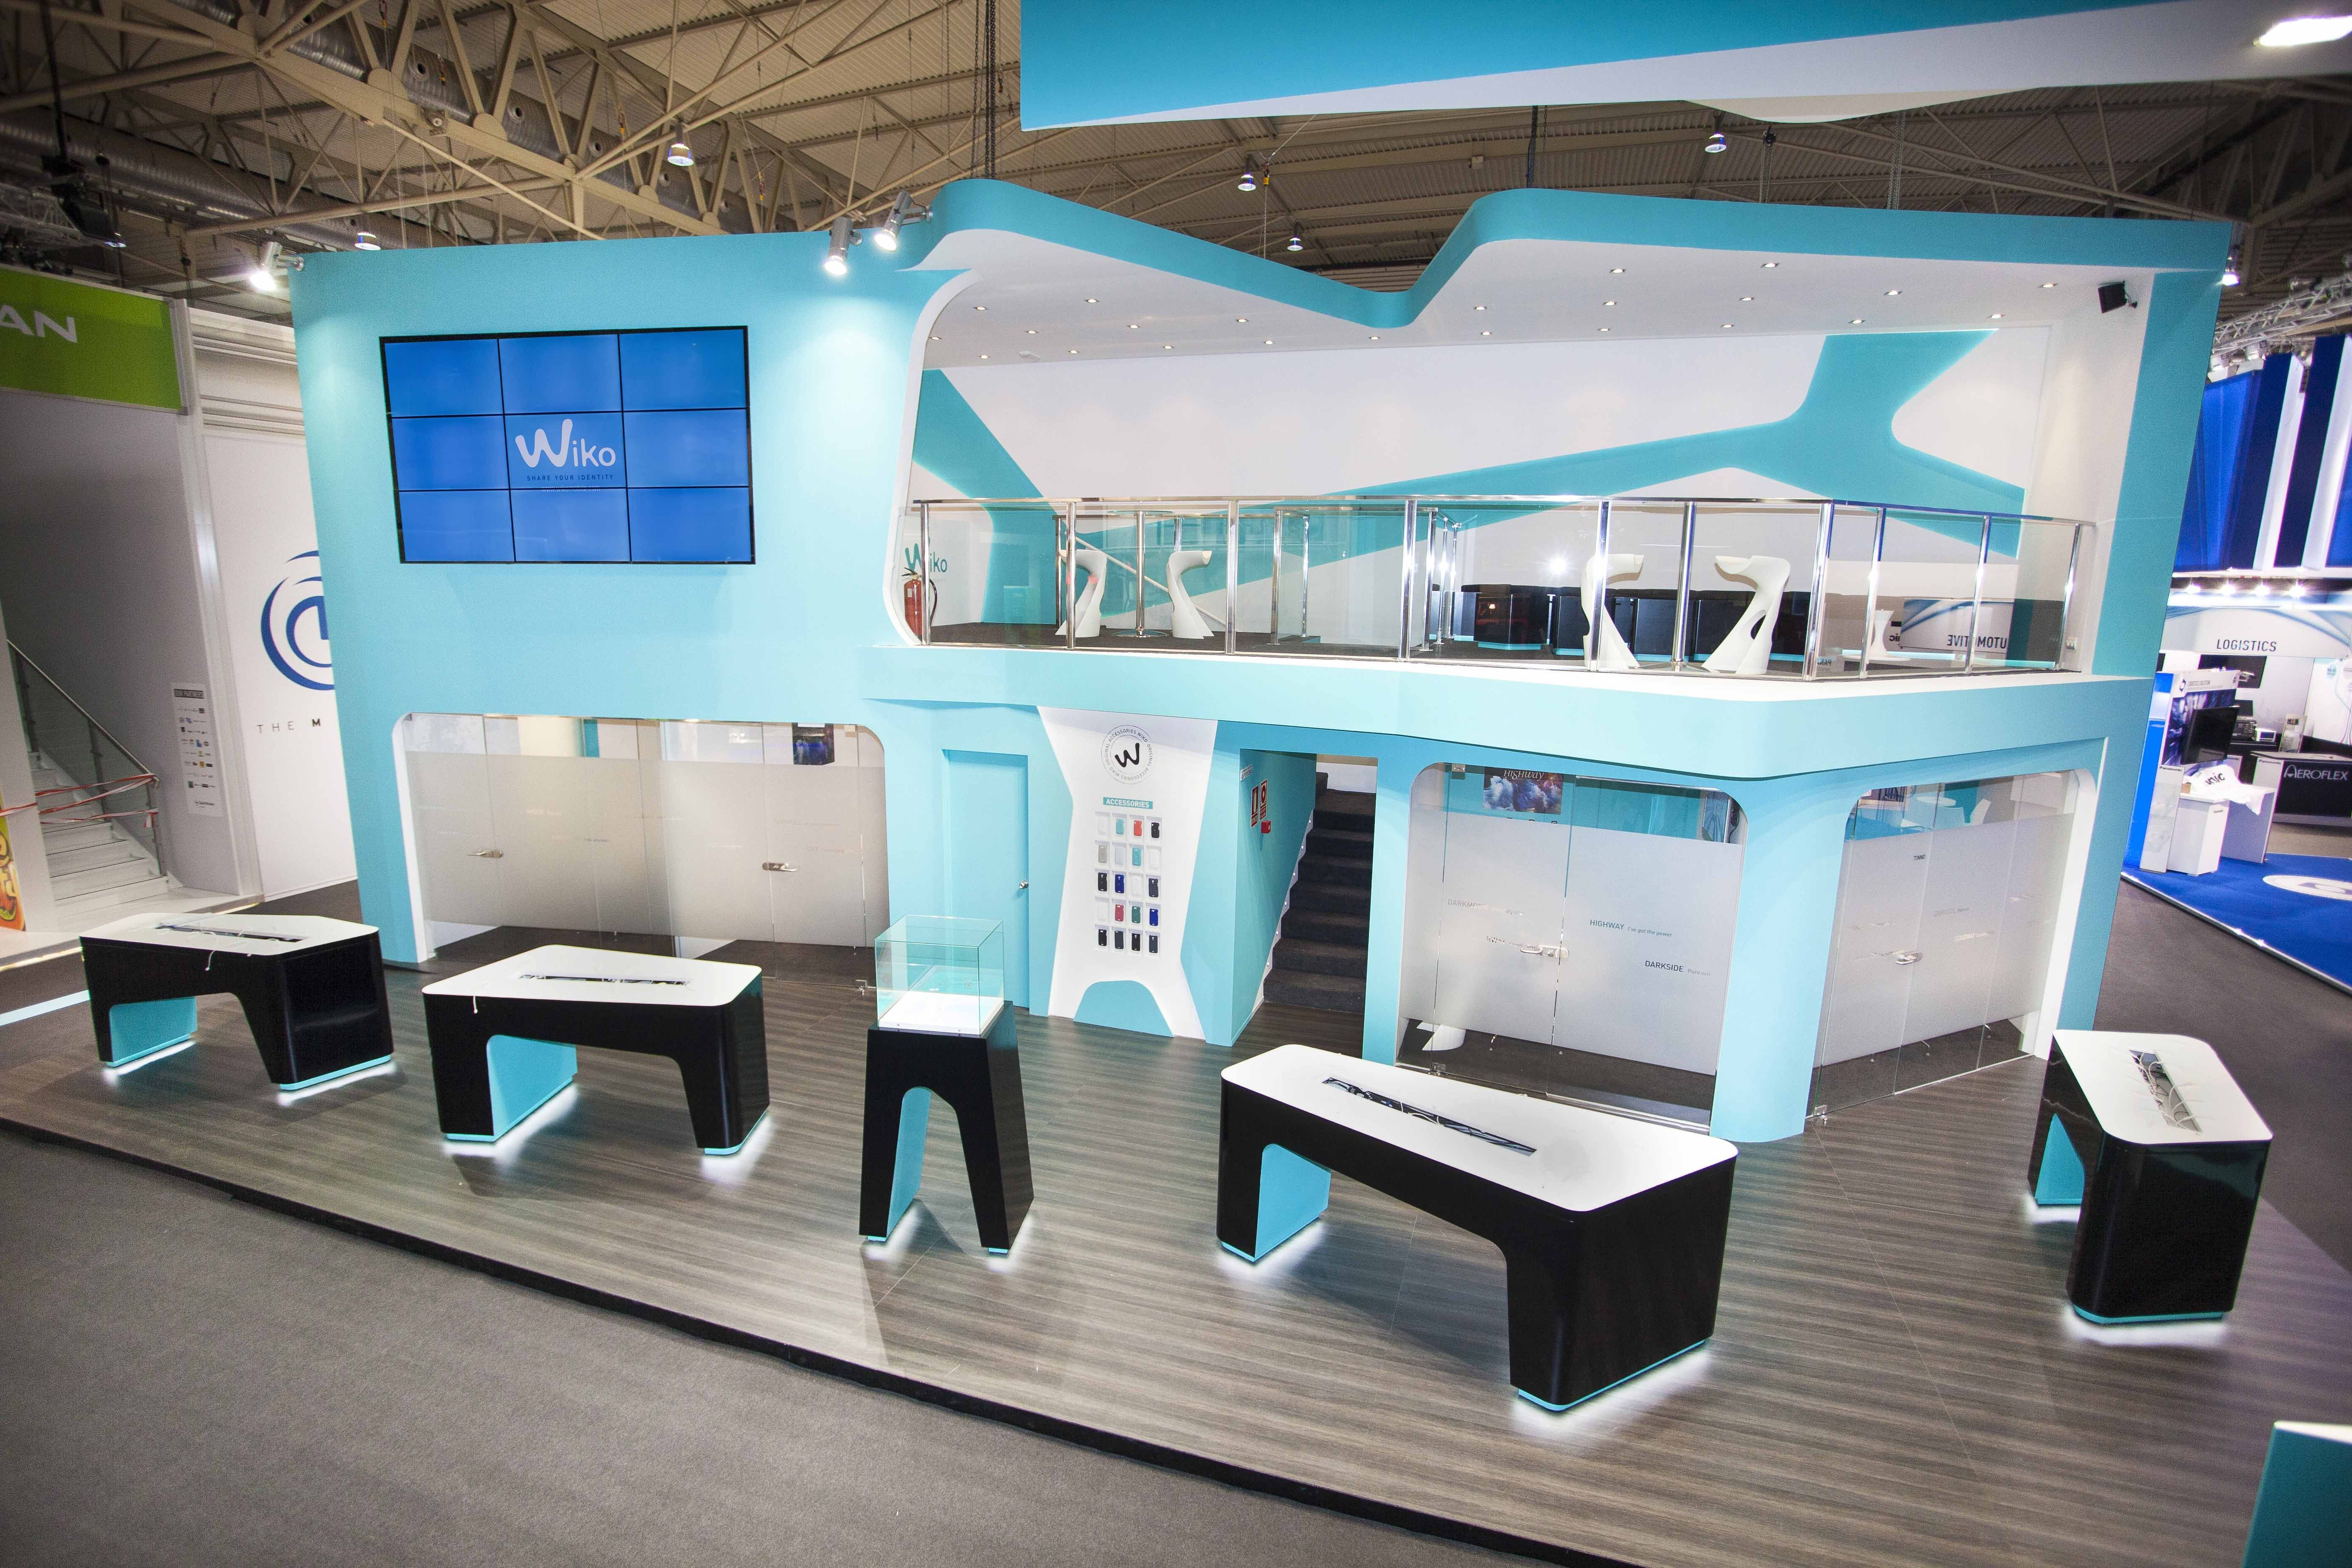 Marketing Ideas For Exhibition Stand : Stand double deck mobile world congress barcelona stands booth